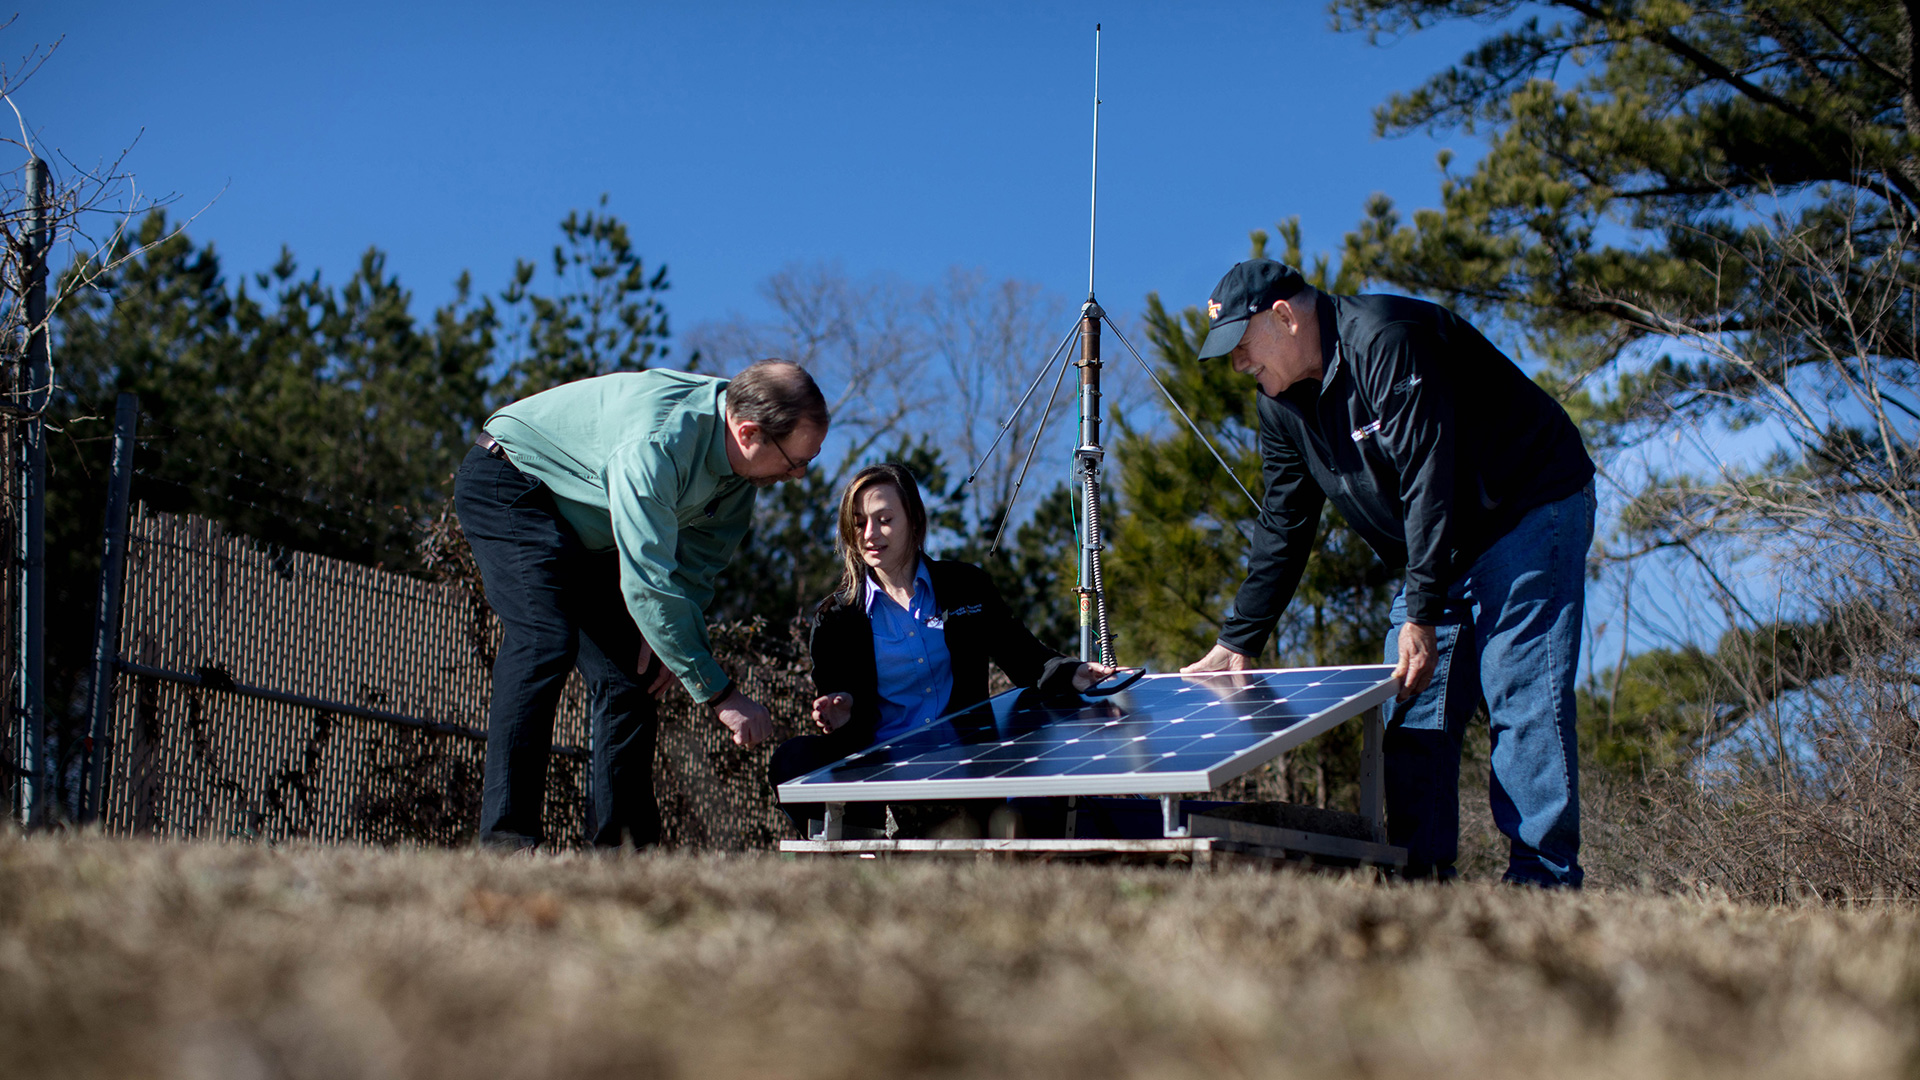 photo: two men and one woman, working outdoors in a field on a crisp Fall day, examine weather equipment.